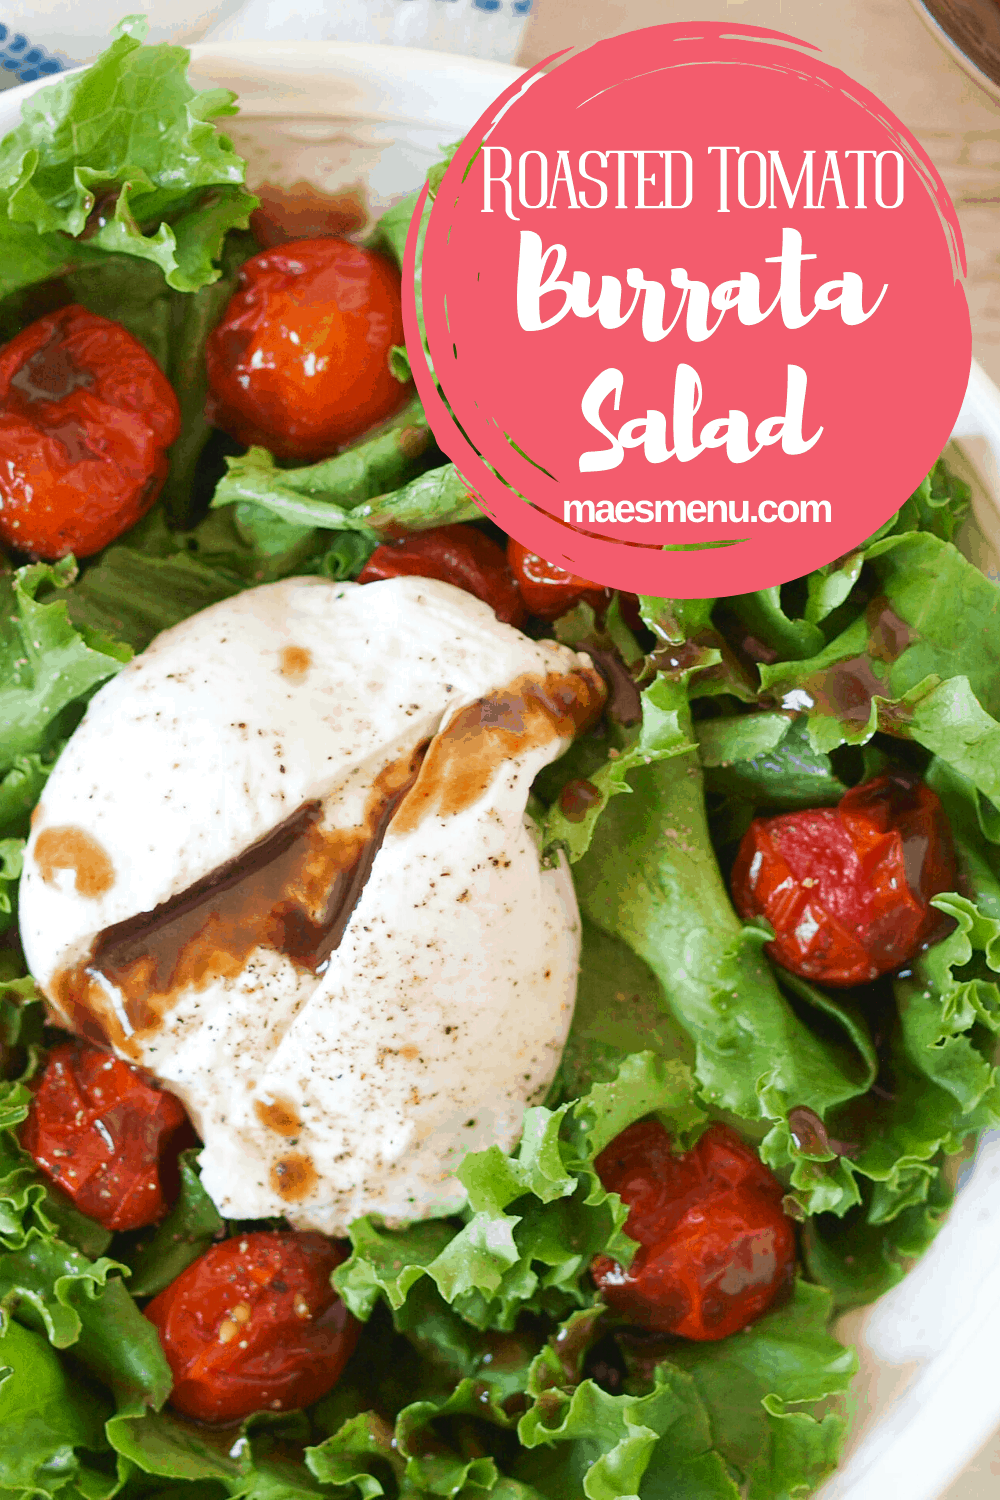 A pinterest pin for roasted tomato burrata salad with an up close picture of the salad and a round blurb in the upper right corner with the title.